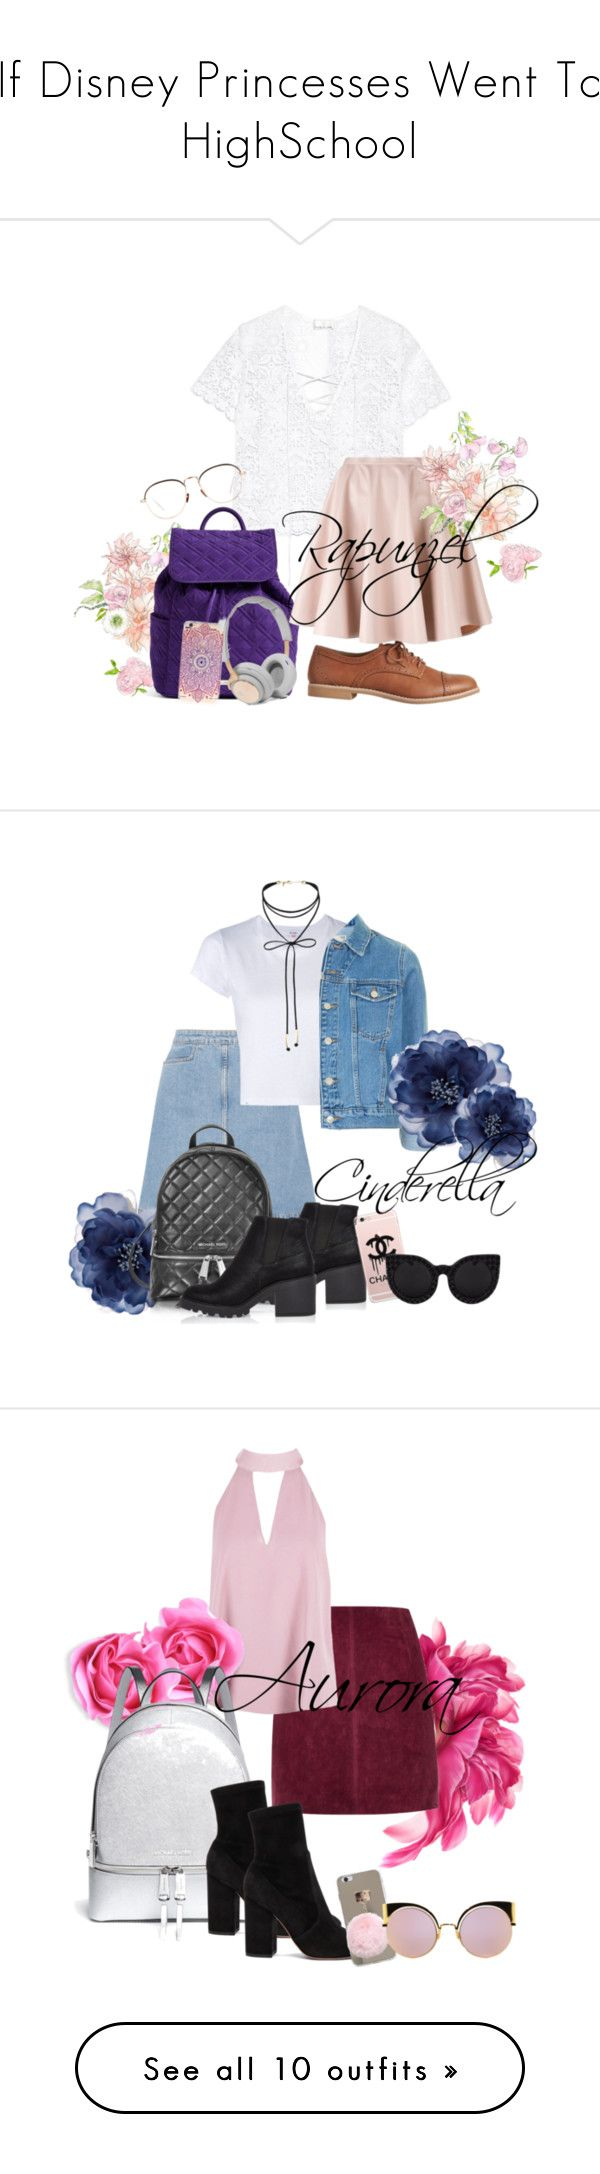 """If Disney Princesses Went To HighSchool"" by grraciie-386 on Polyvore featuring Miguelina, Vera Bradley, Gap, Giamba, B&O Play, Linda Farrow, M.i.h Jeans, RE/DONE, Topshop and Accessorize"